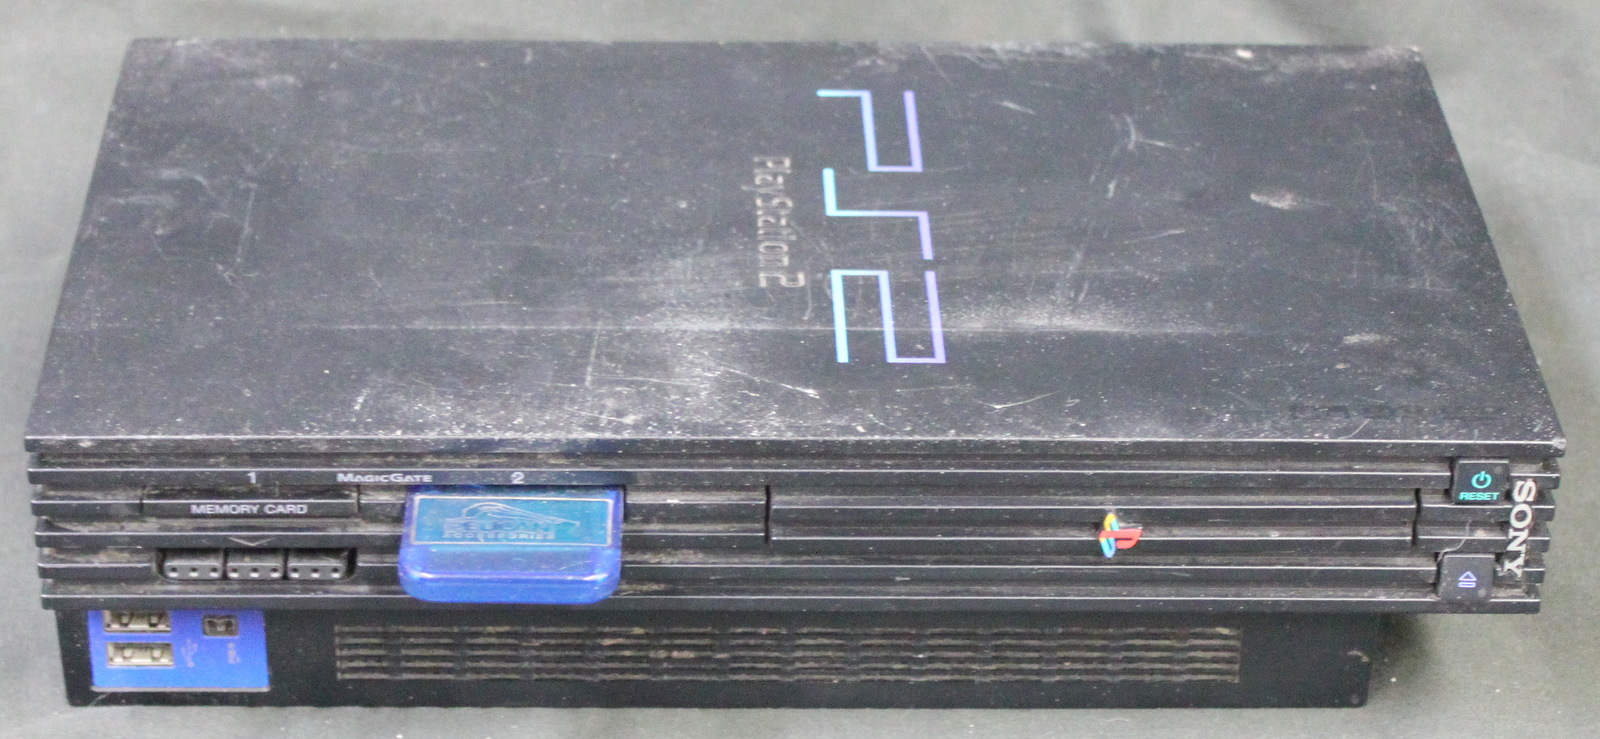 Ps2 Scph 30001: Sony PlayStation 2 Black Console (NTSC